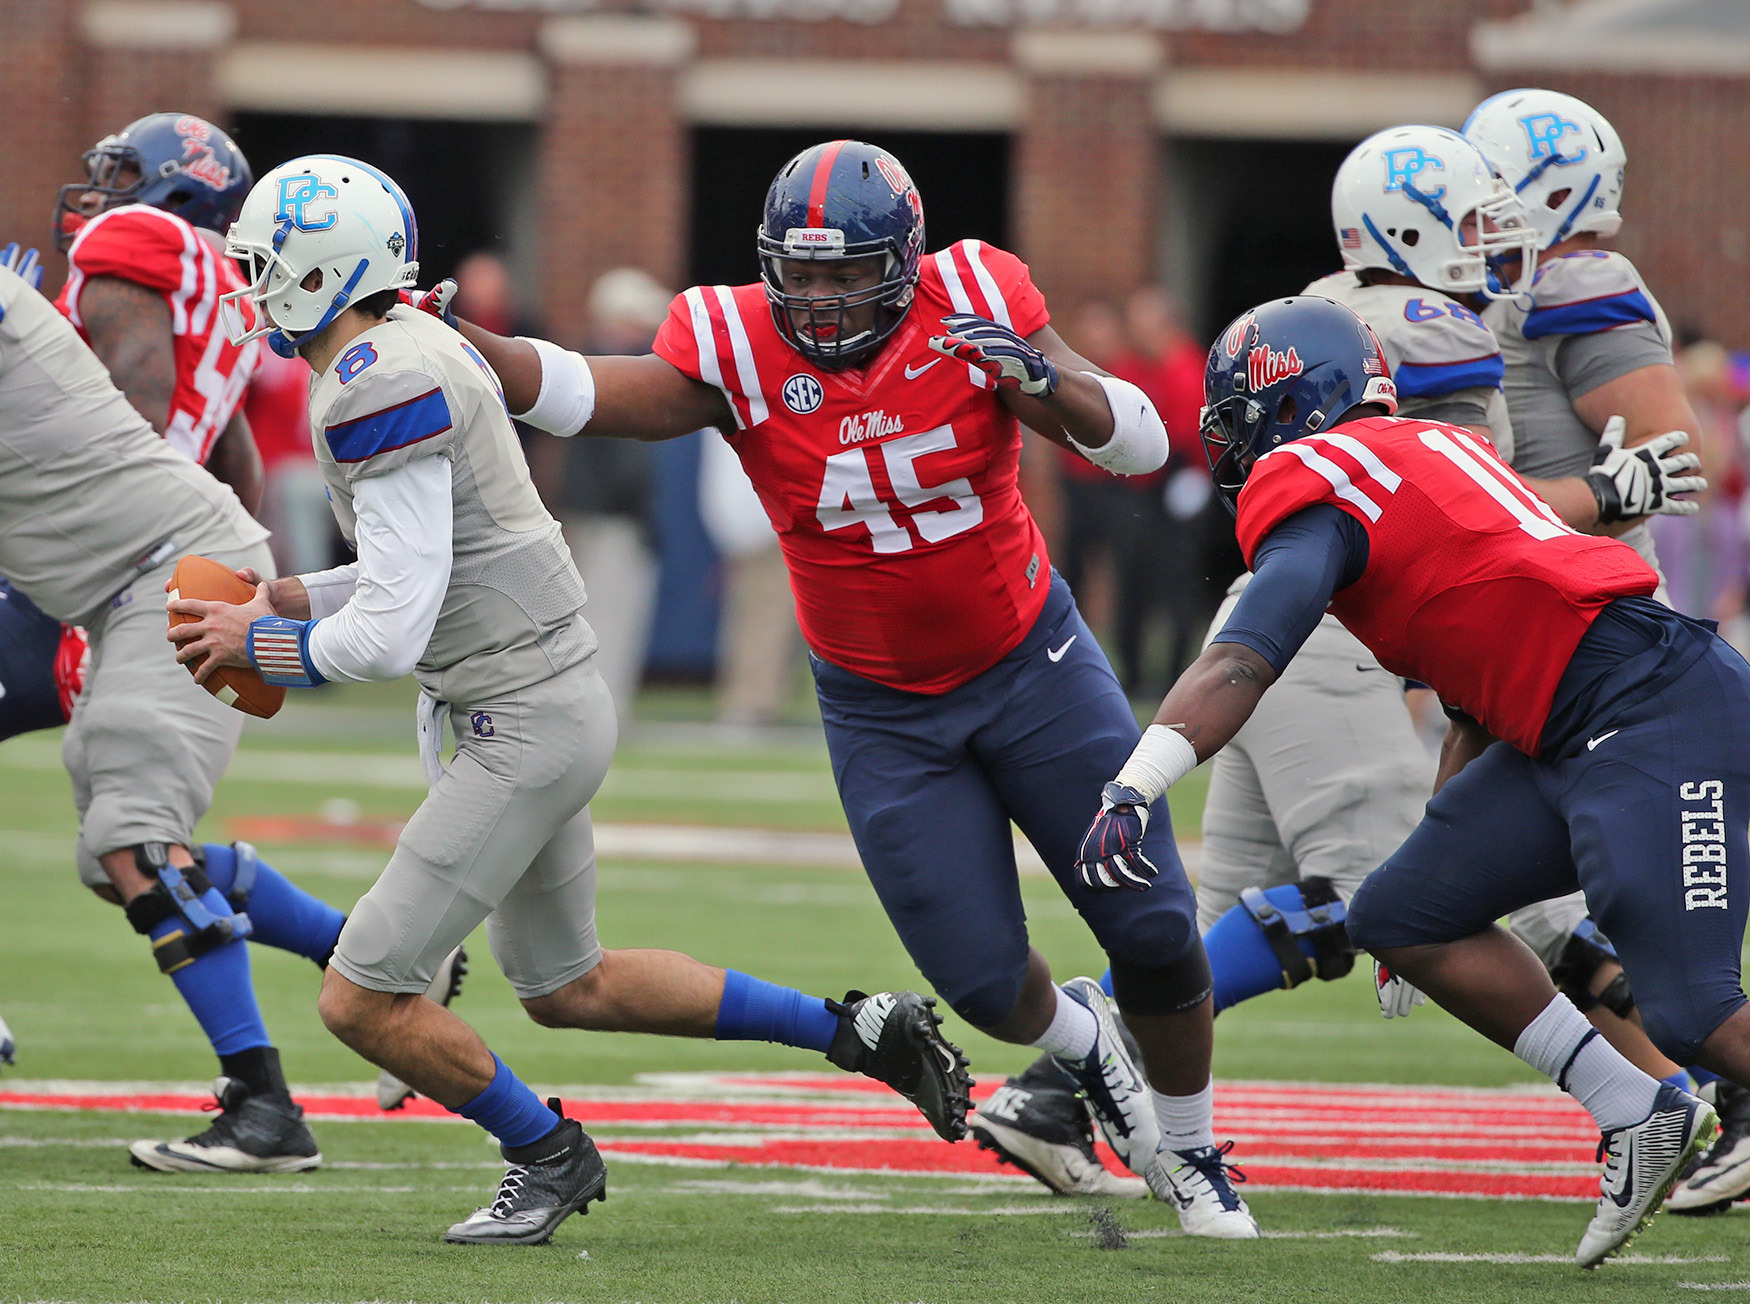 half off 8ec7f 4f7e8 Three More Rebels Picked Up by NFL Teams - Ole Miss Athletics